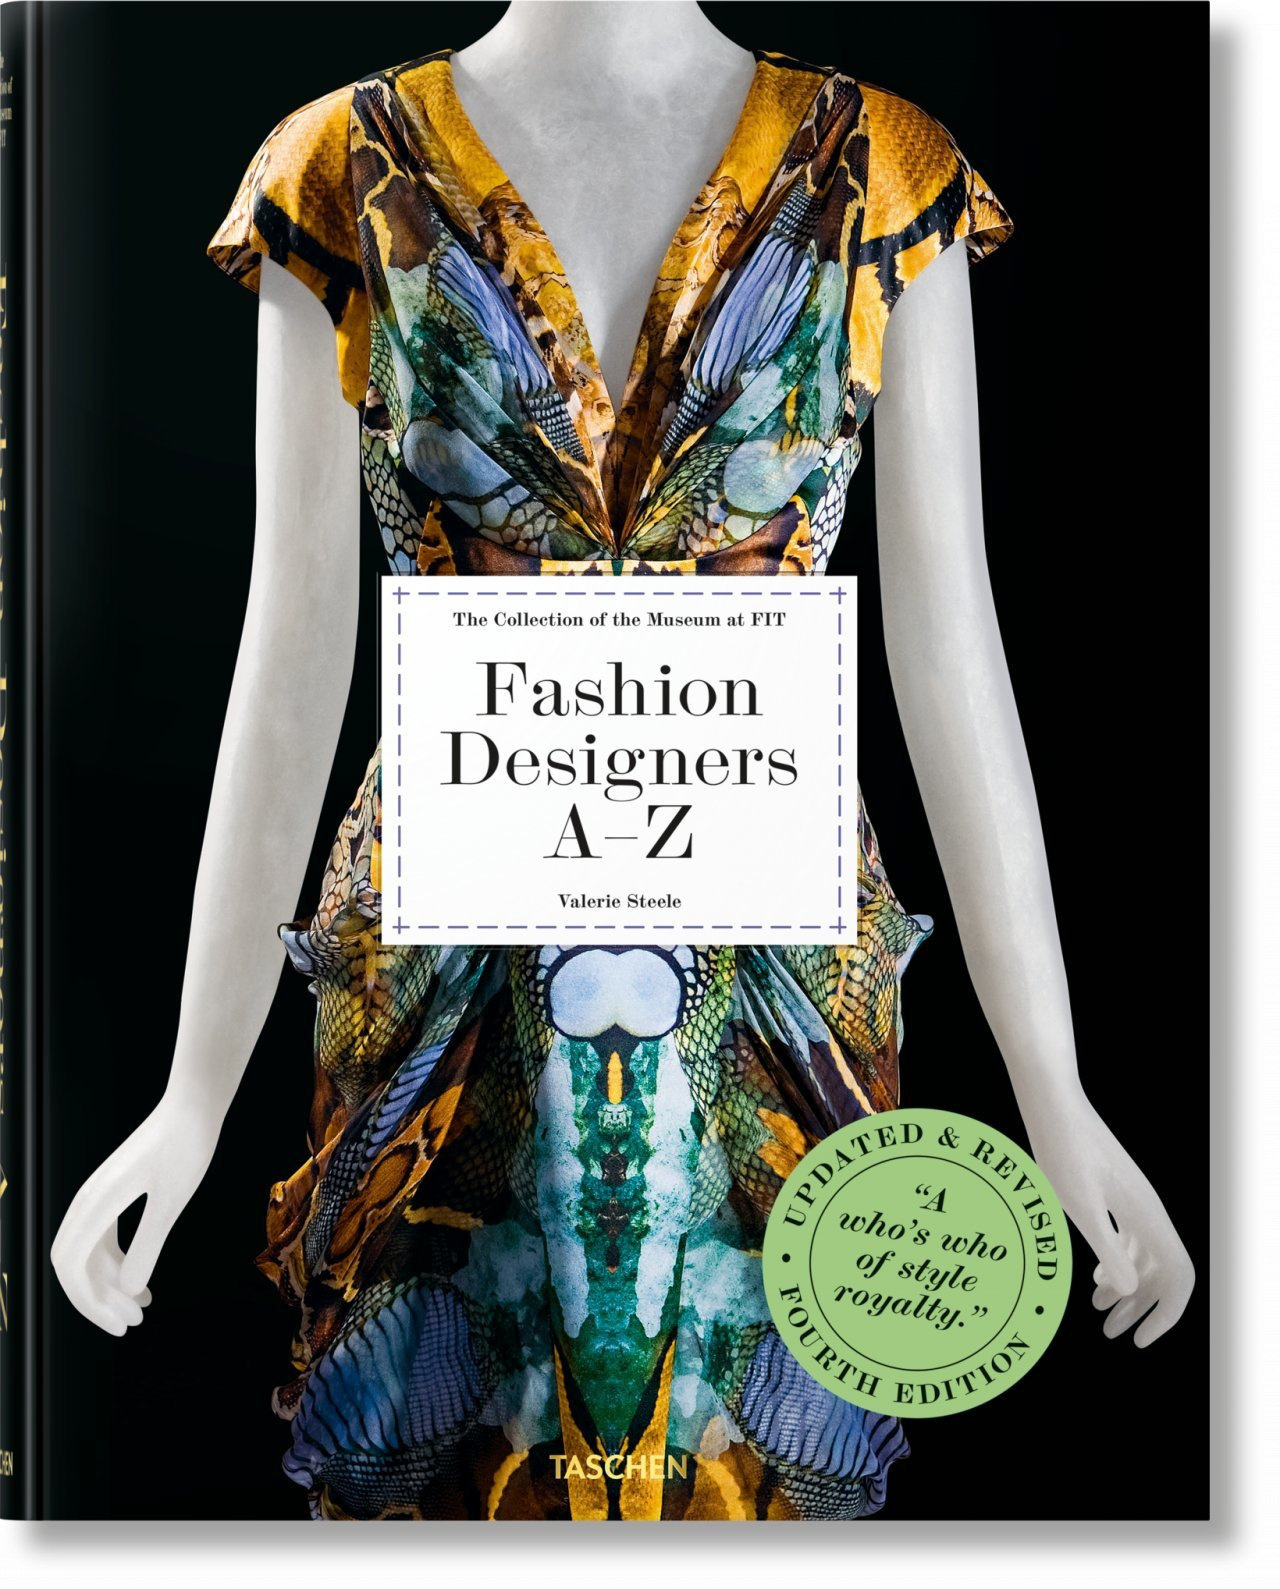 FASHION DESIGNERS A-Z, UPDATED 2020 EDITION